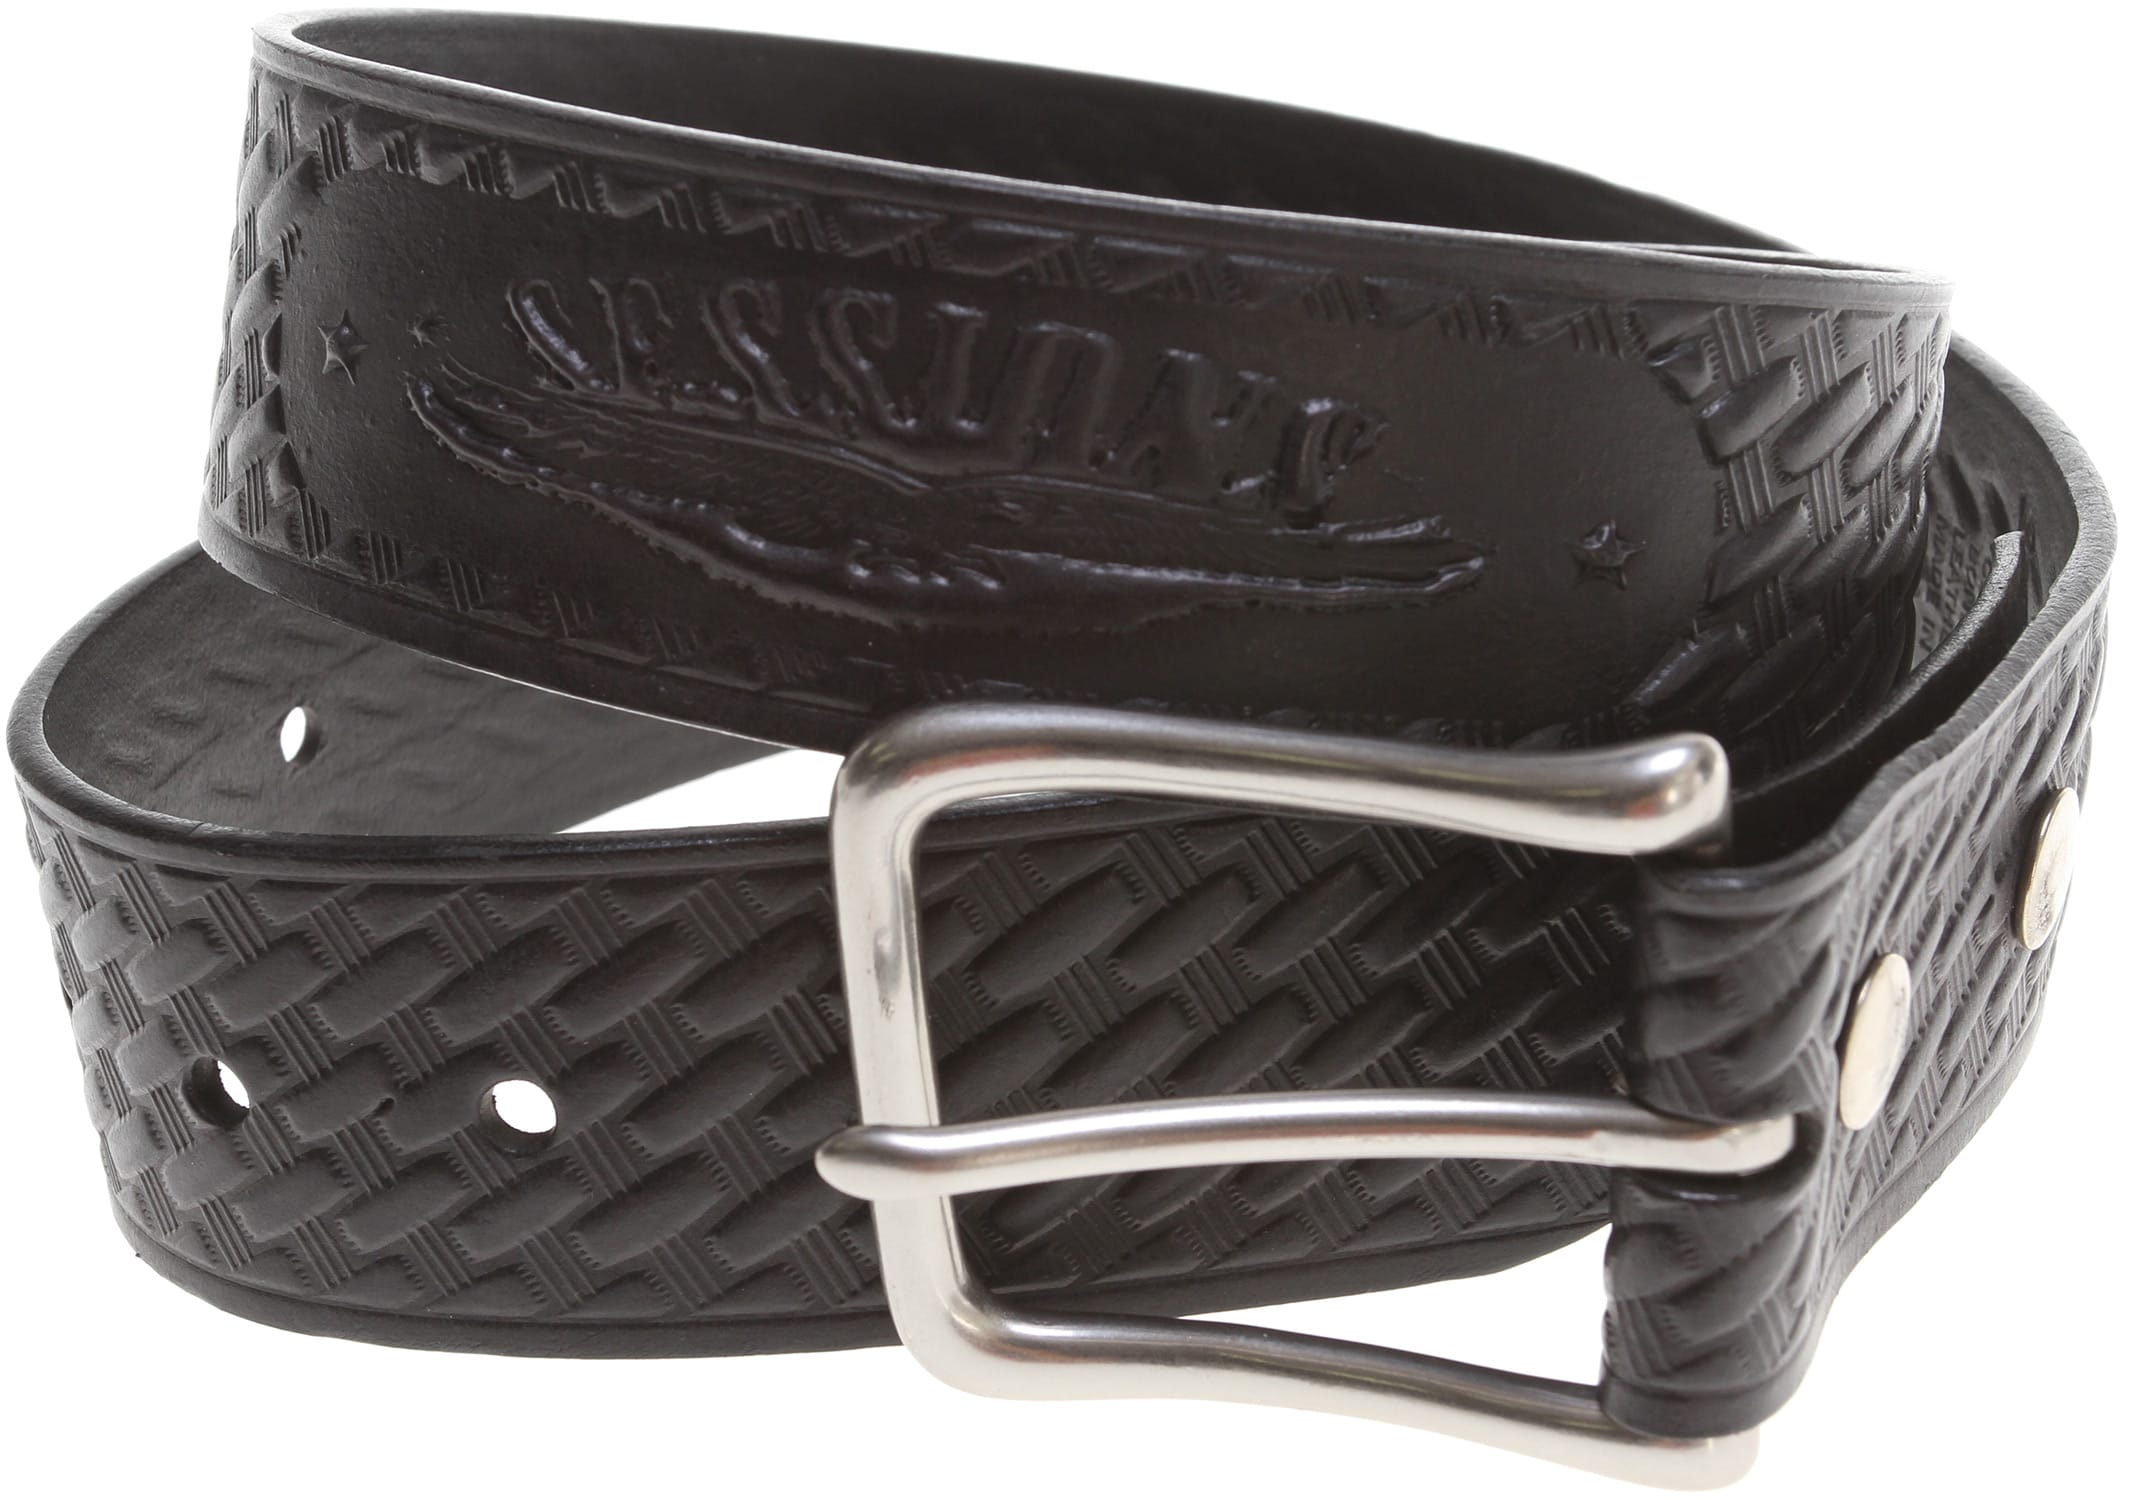 on sale sessions pattern leather belt up to 55